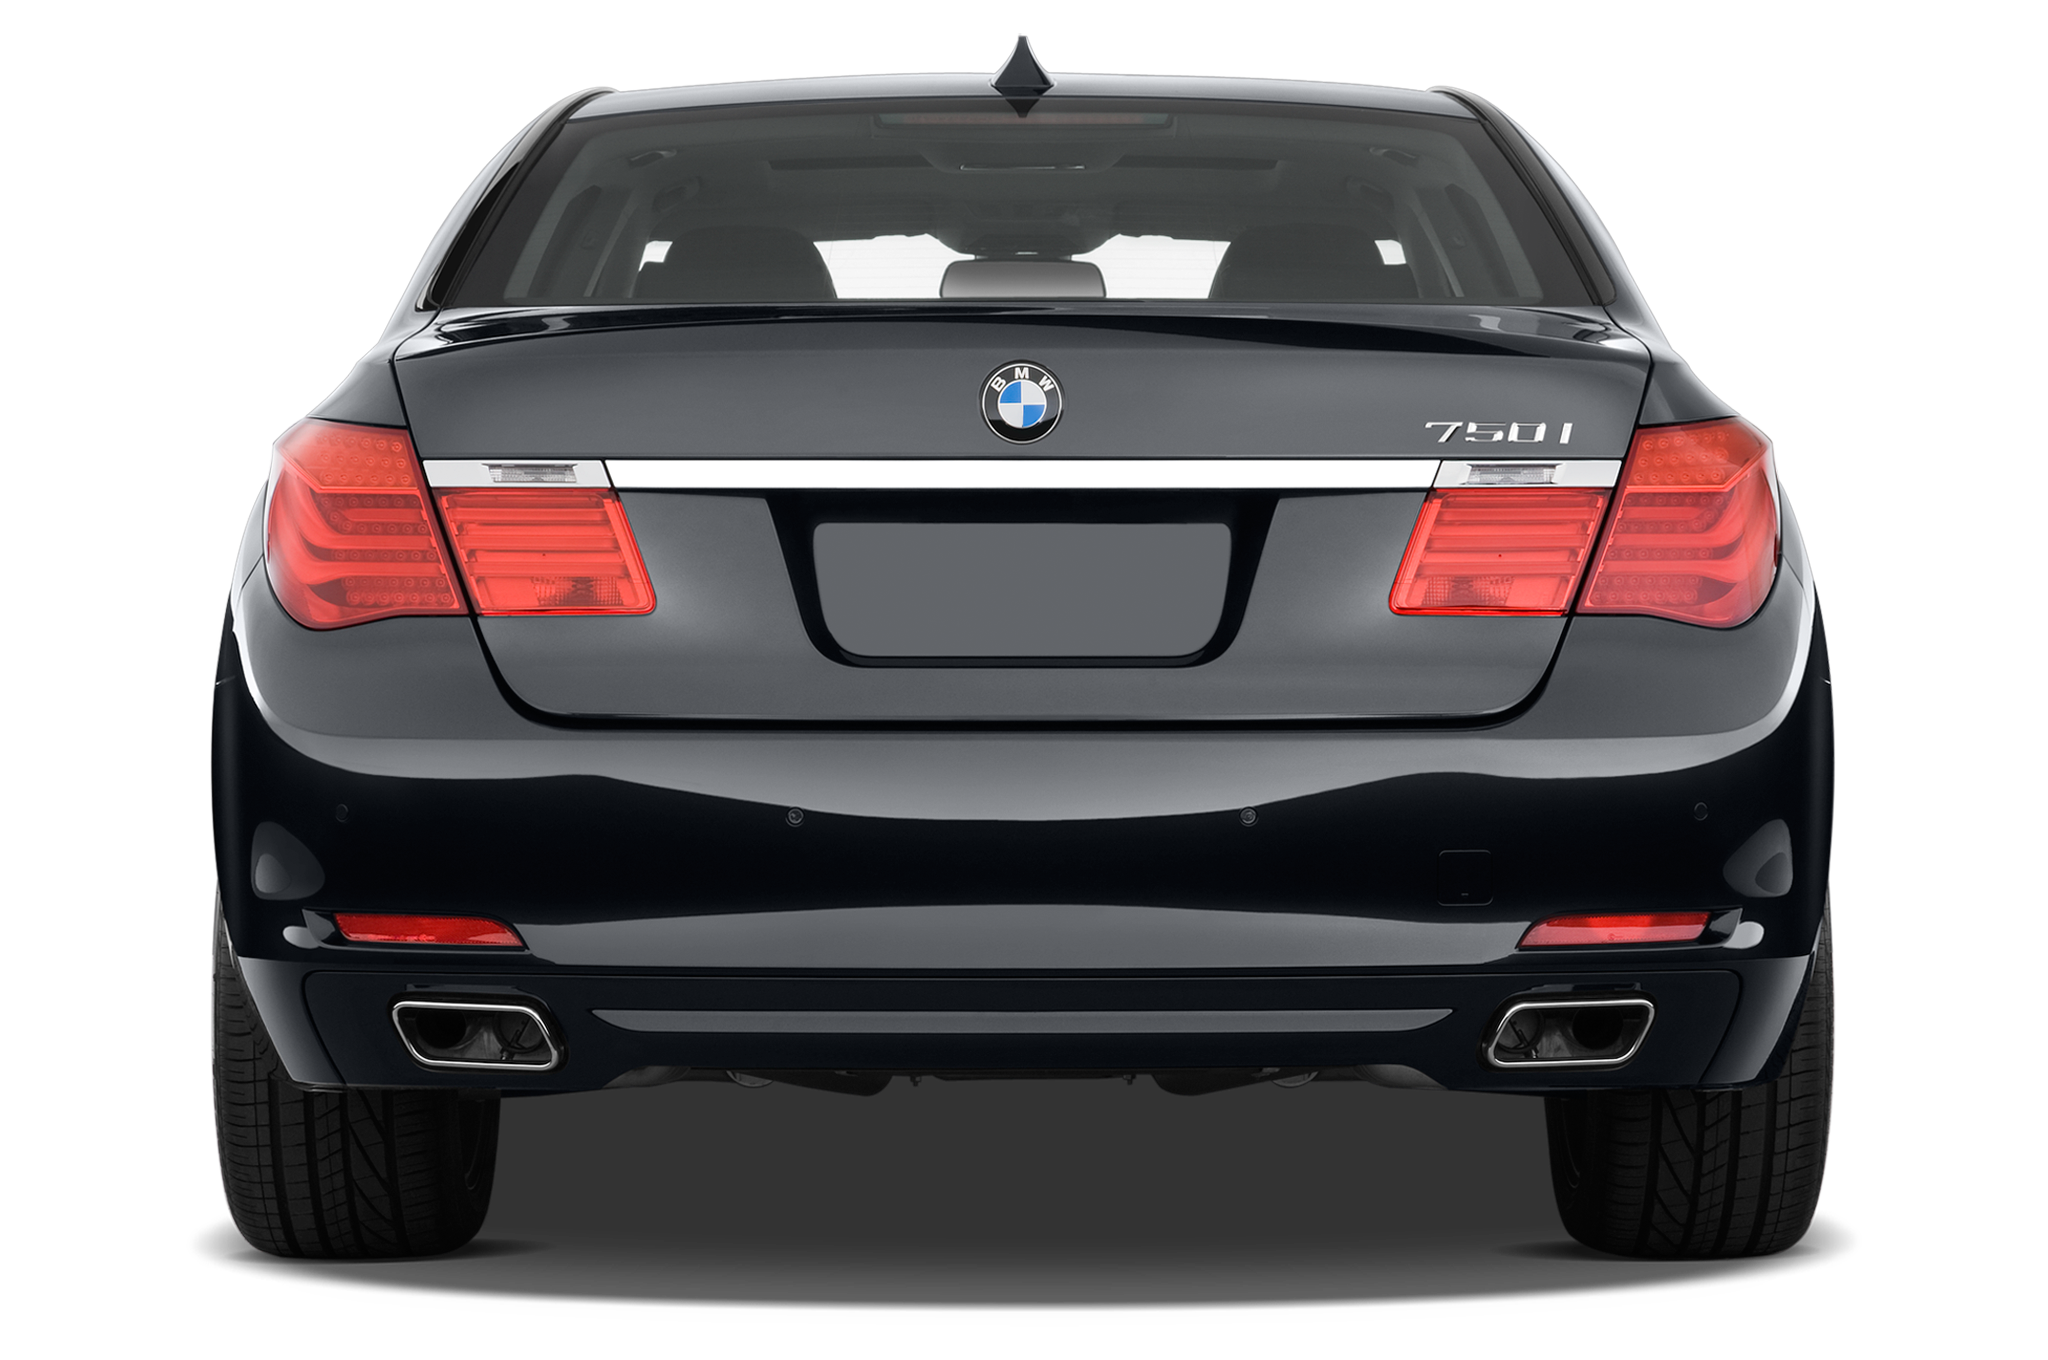 2010 Bmw 750li Xdrive Bmw 7 Series Luxury Sedan Review